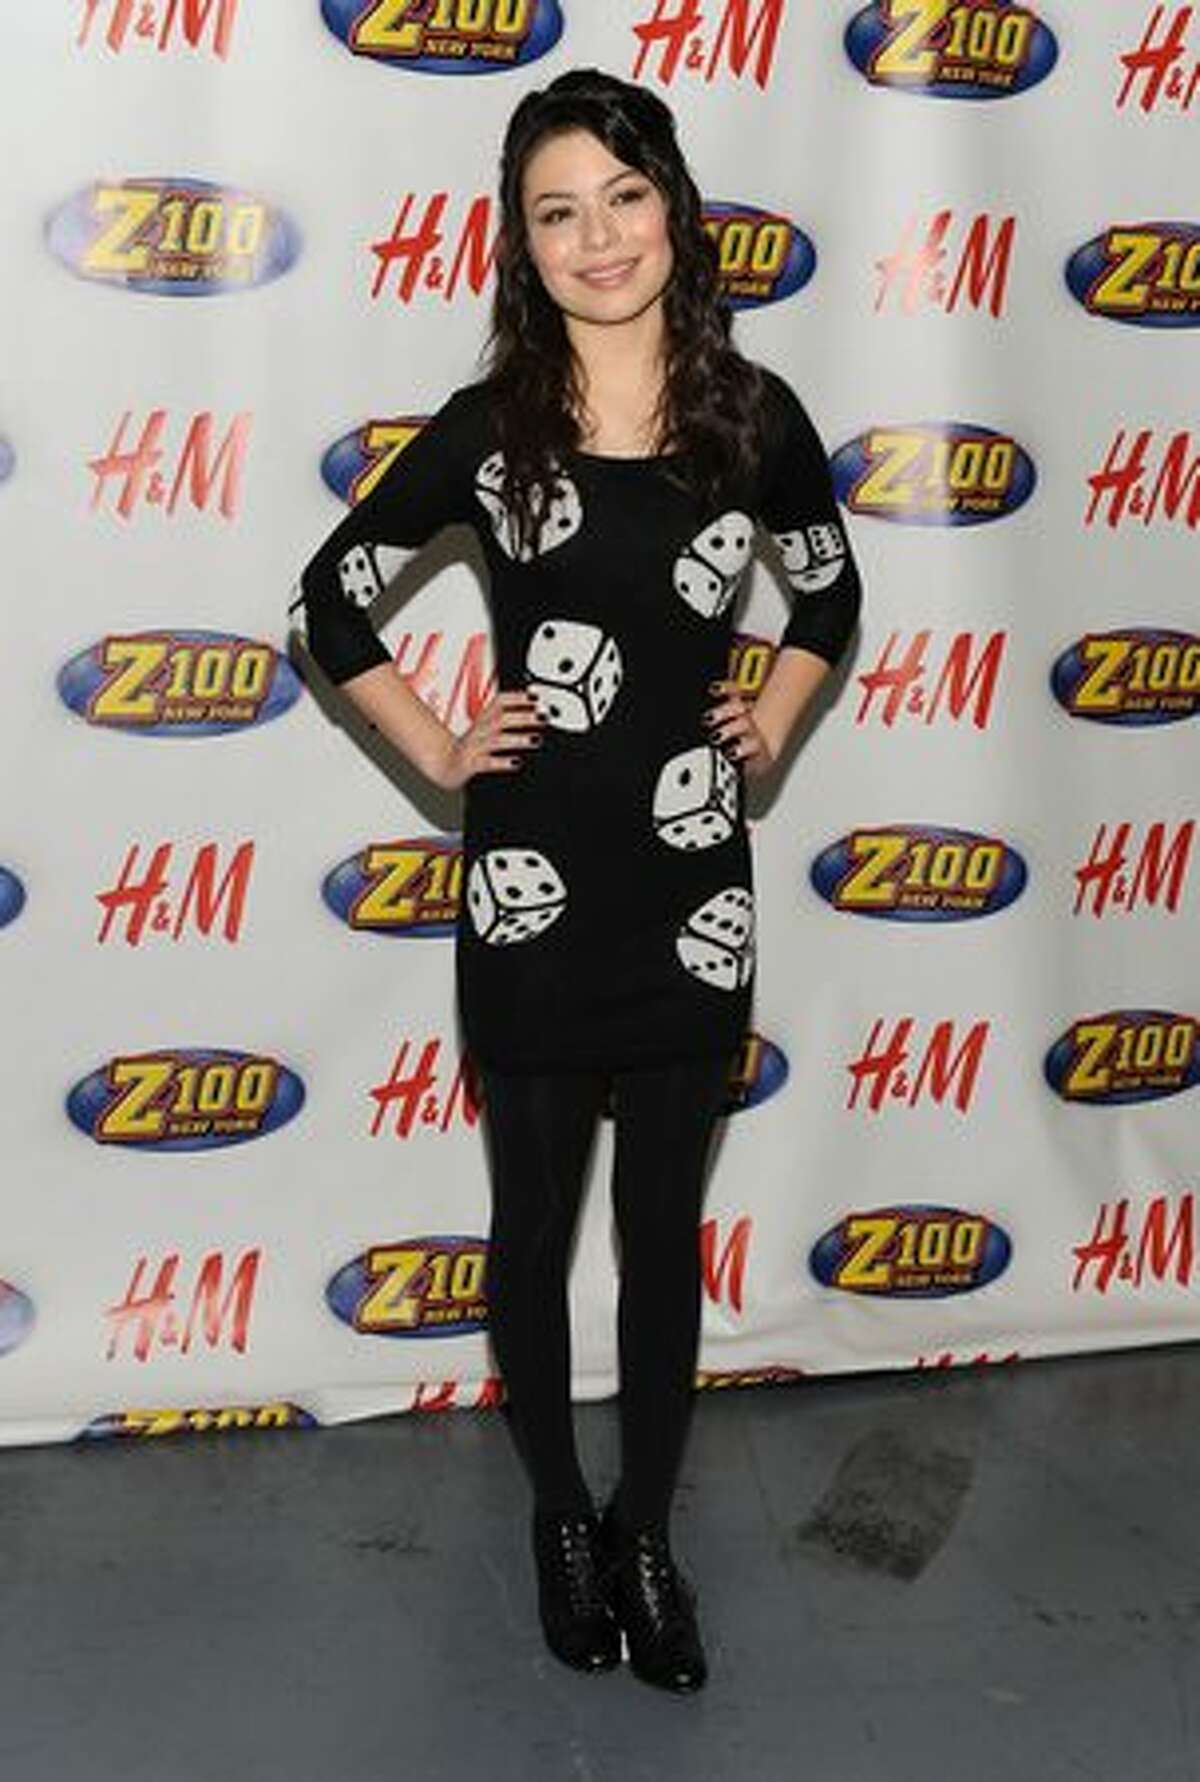 Actress Miranda Cosgrove attends Z100's Jingle Ball 2009 at Madison Square Garden on December 11, 2009 in New York City.